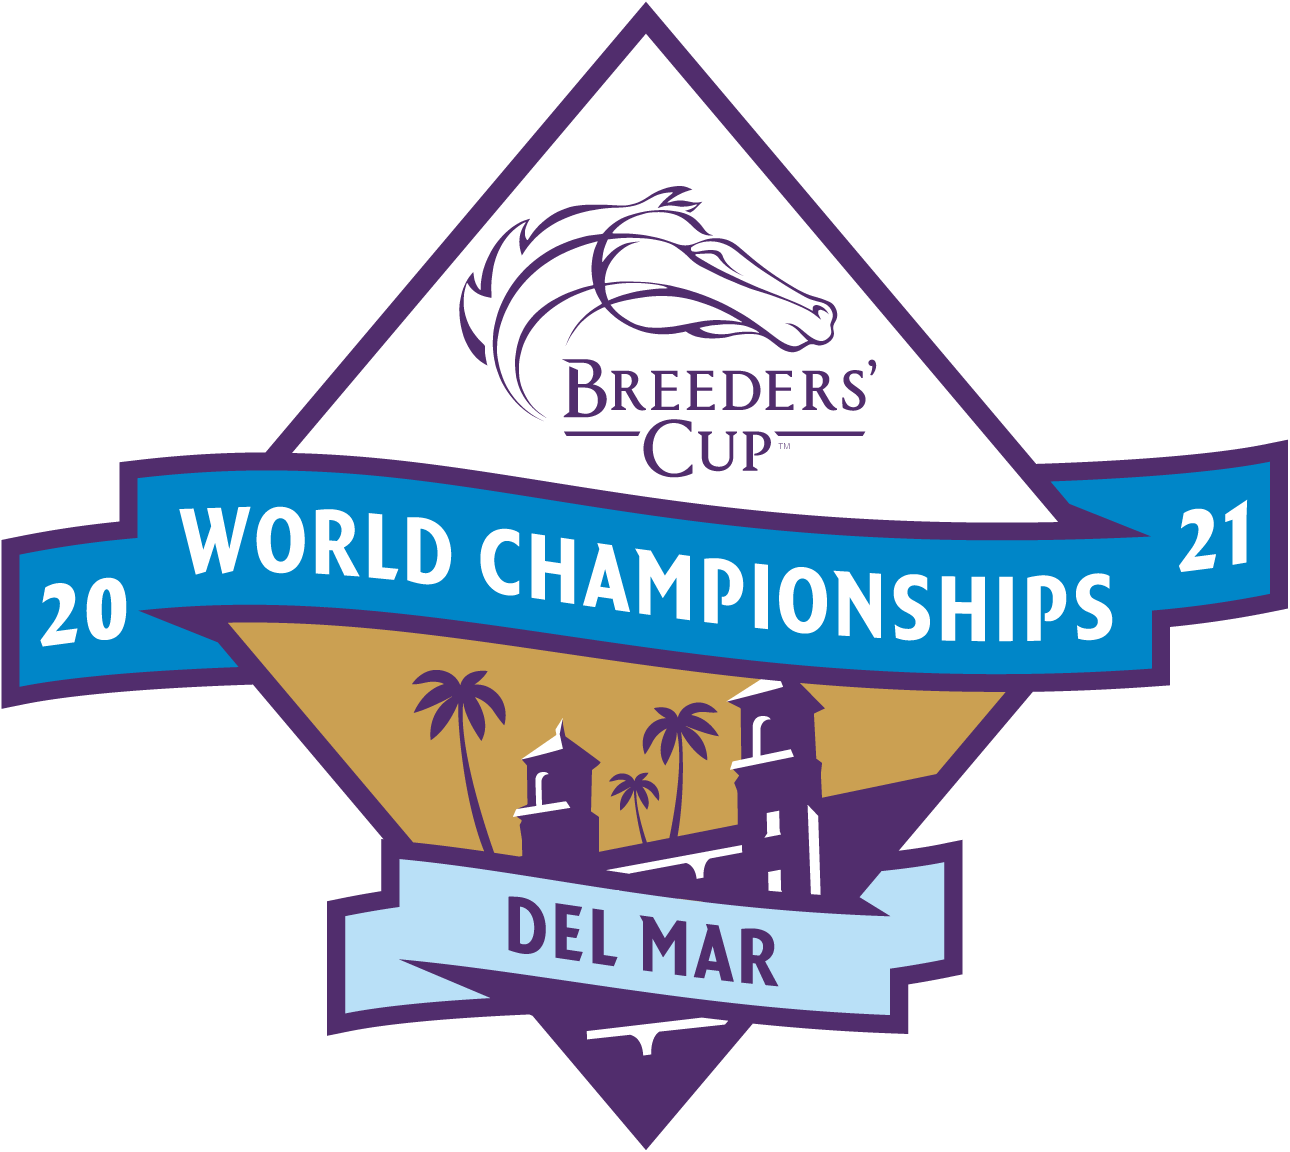 Breeders Cup Reveals Official Logo For 2021 Breeders Cup